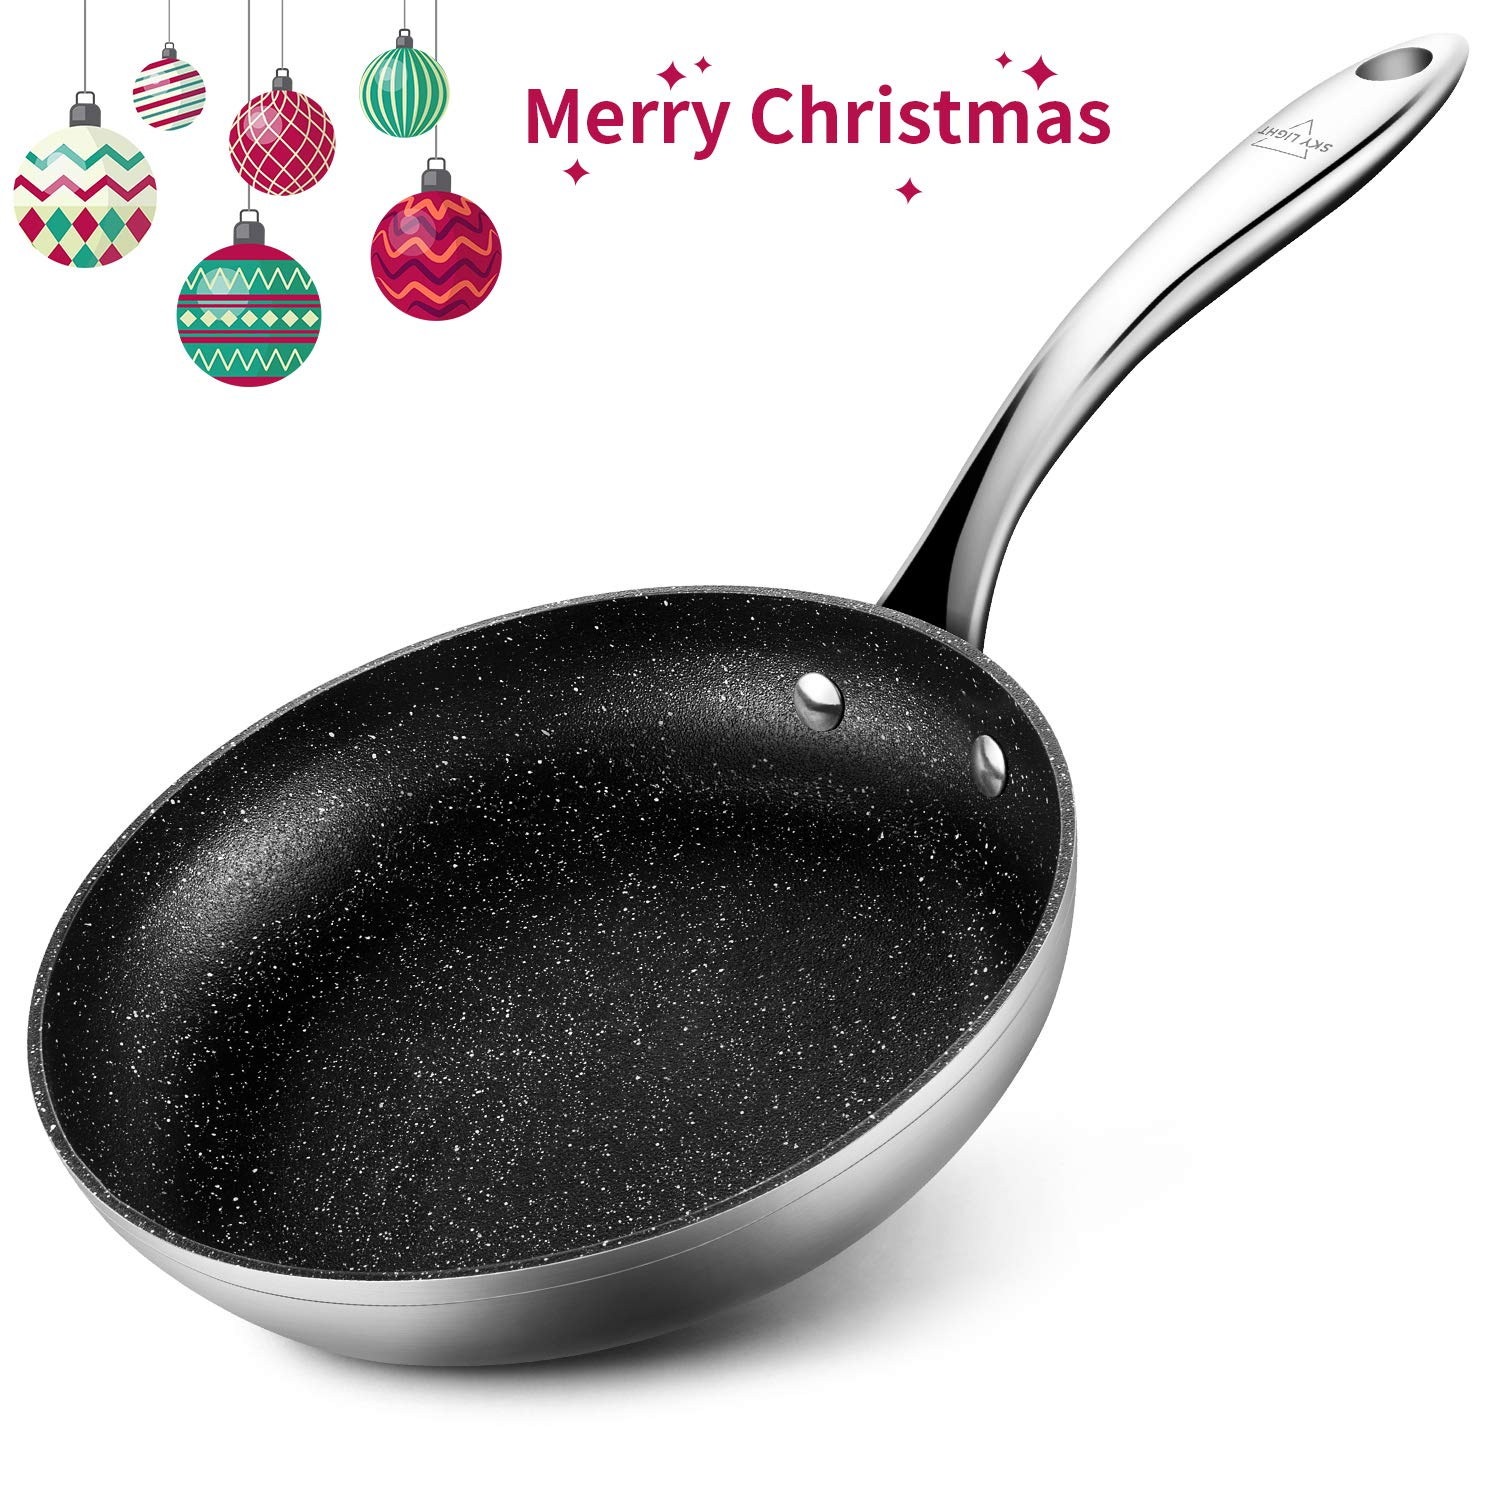 Stainless Steel Opening Skillet, 9.5 inch Nonstick Deep Fry Pan Tri-ply 430 Steel Omelet Pan Frying Pan Dishwasher Safe Oven Safe No-stick Cookware/Gift Box Included